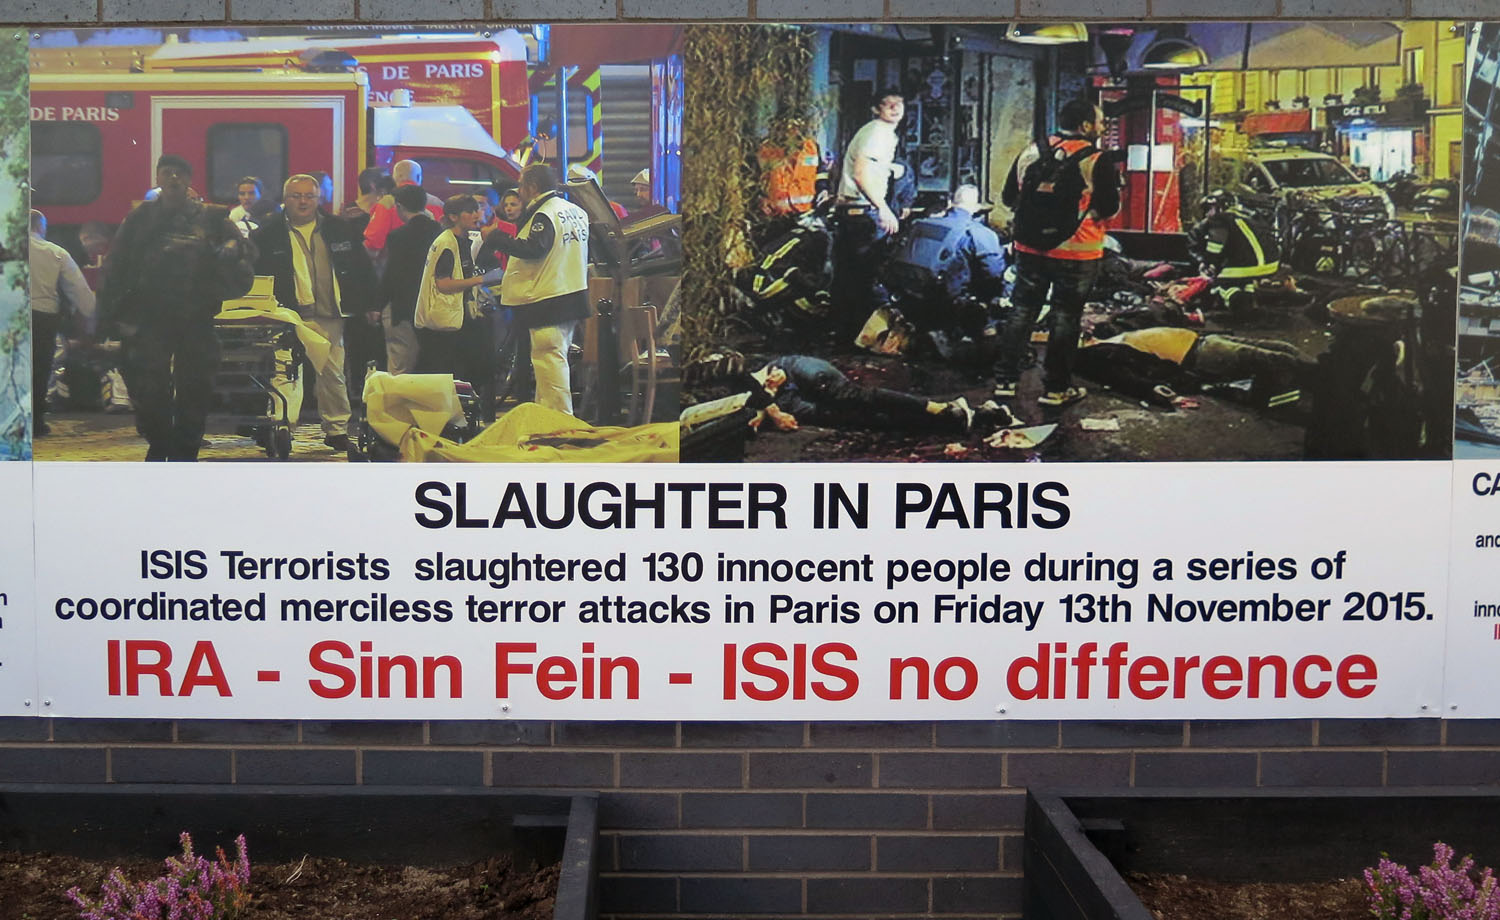 Northern-Ireland-Belfast-The-Troubles-Loyalist-Poster-Equating-IRA-Sinn-Fein-And-ISIS